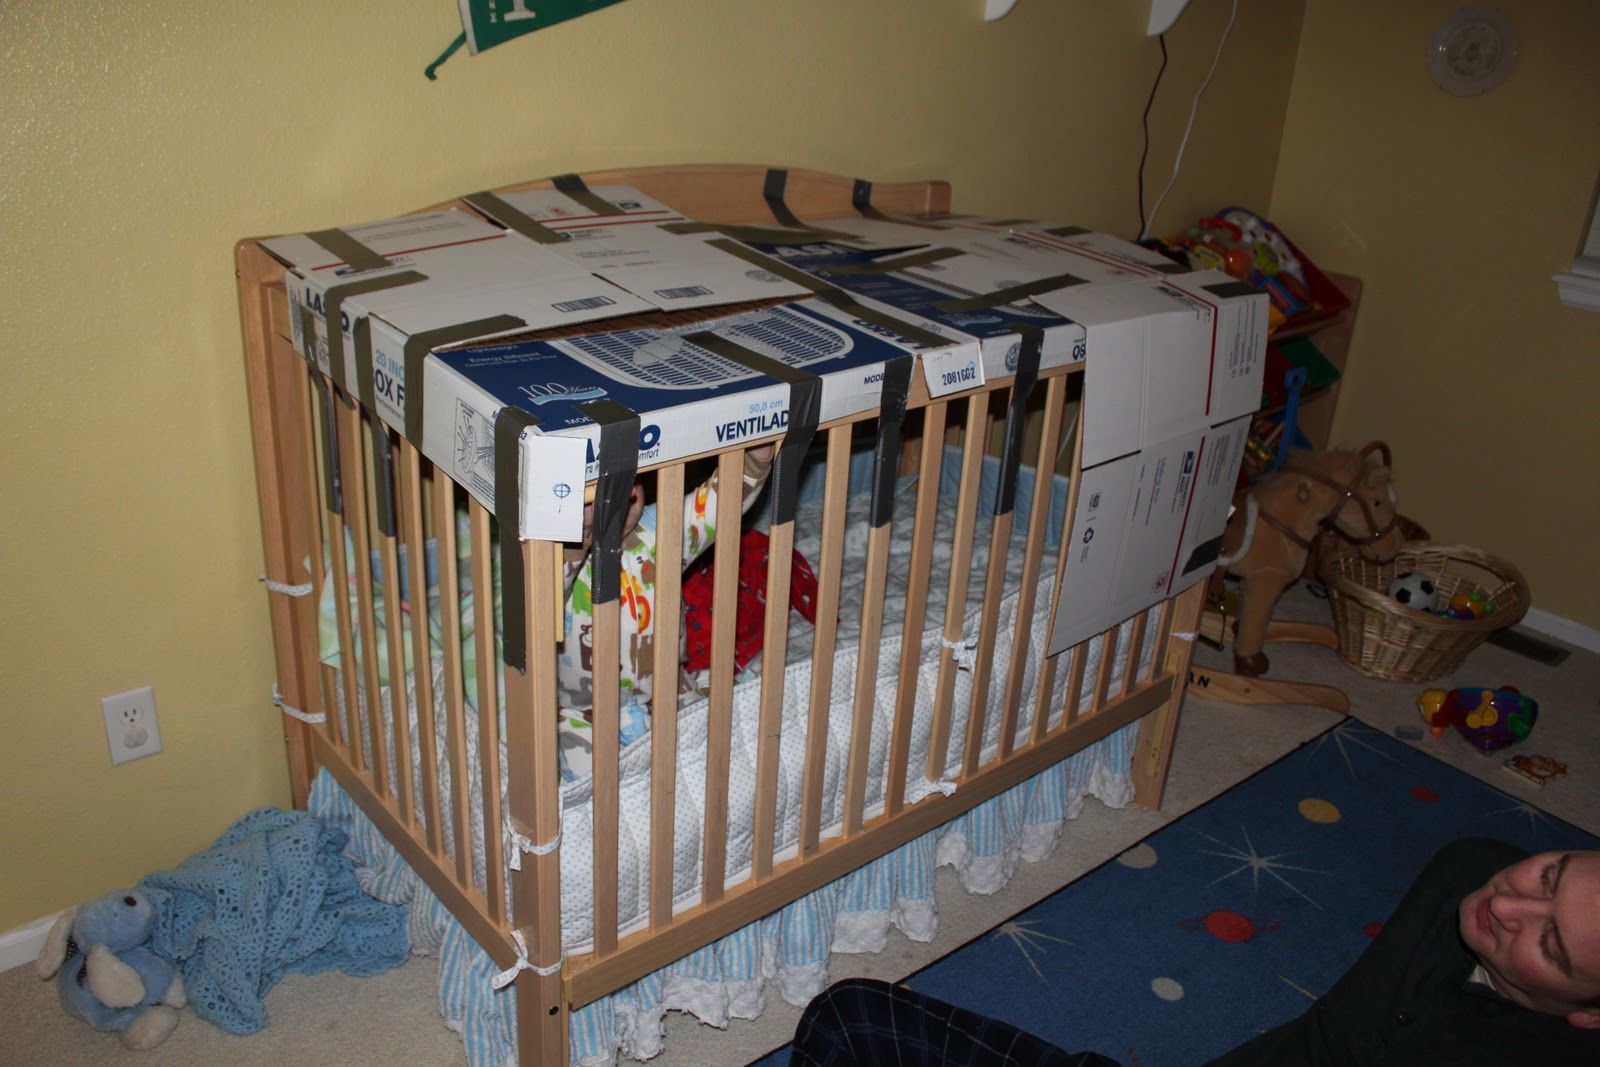 How To Keep The Cat Out Of The Crib